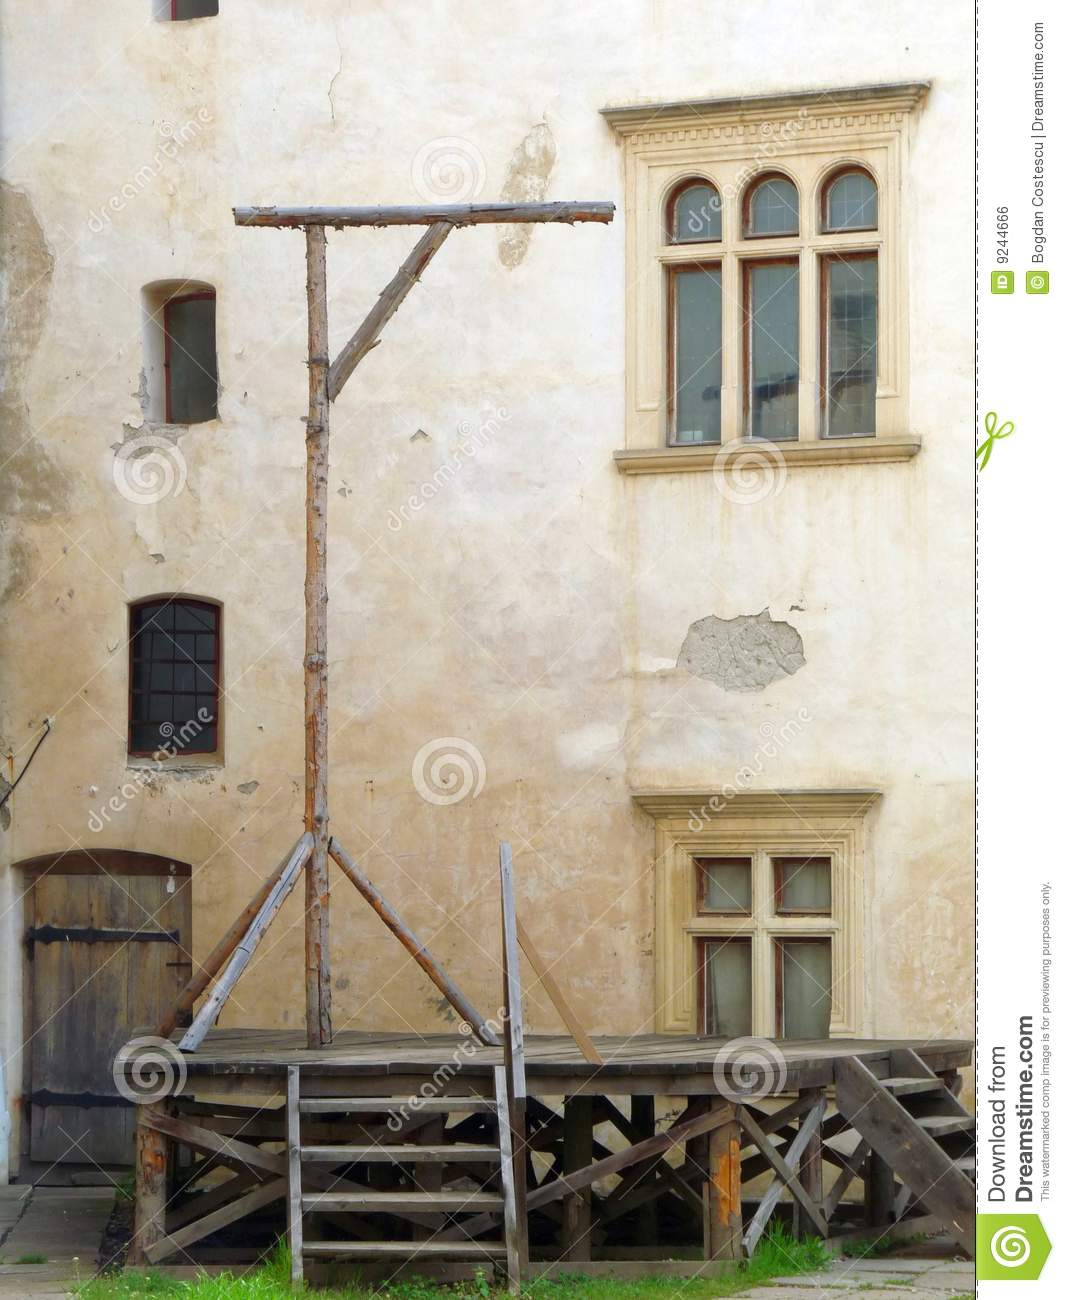 Medieval Gallows Royalty Free Stock Image - Image: 9244666 Public Policy Symbol